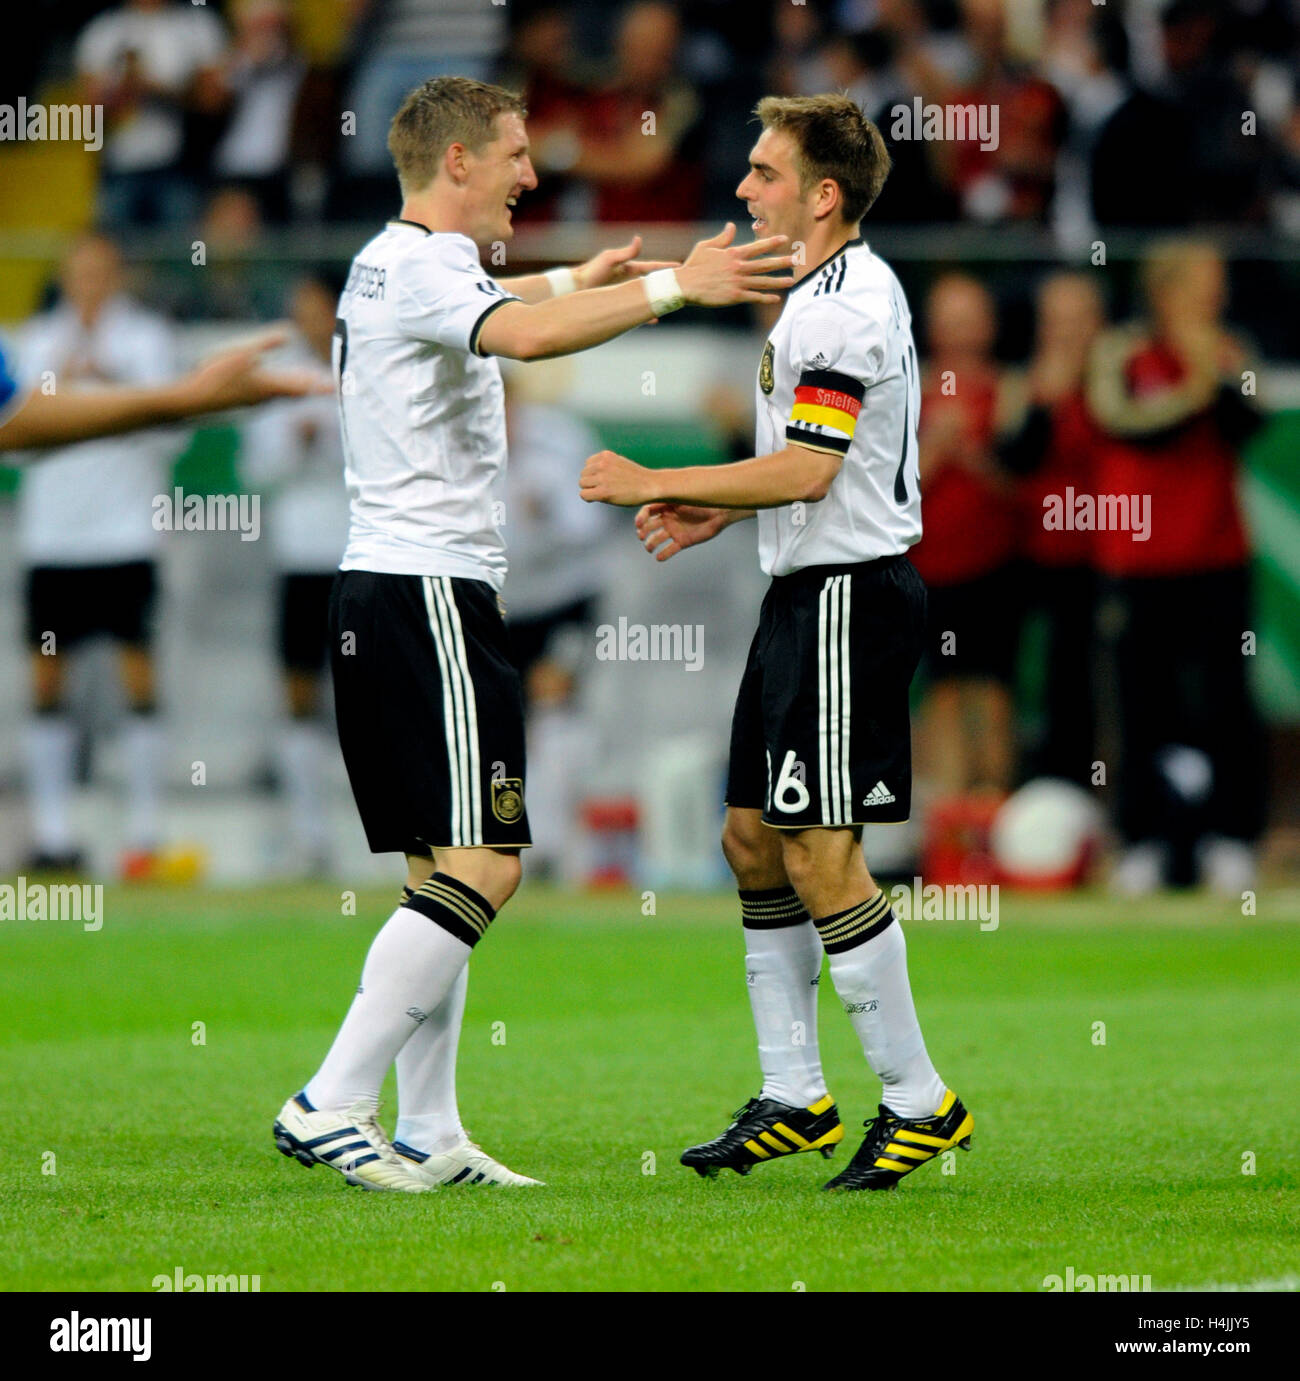 Bastian Schweinsteiger rejoicing with Philipp Lahm after his goal to 1:1, football match, Germany vs. Bosnia-Herzegovina, - Stock Image